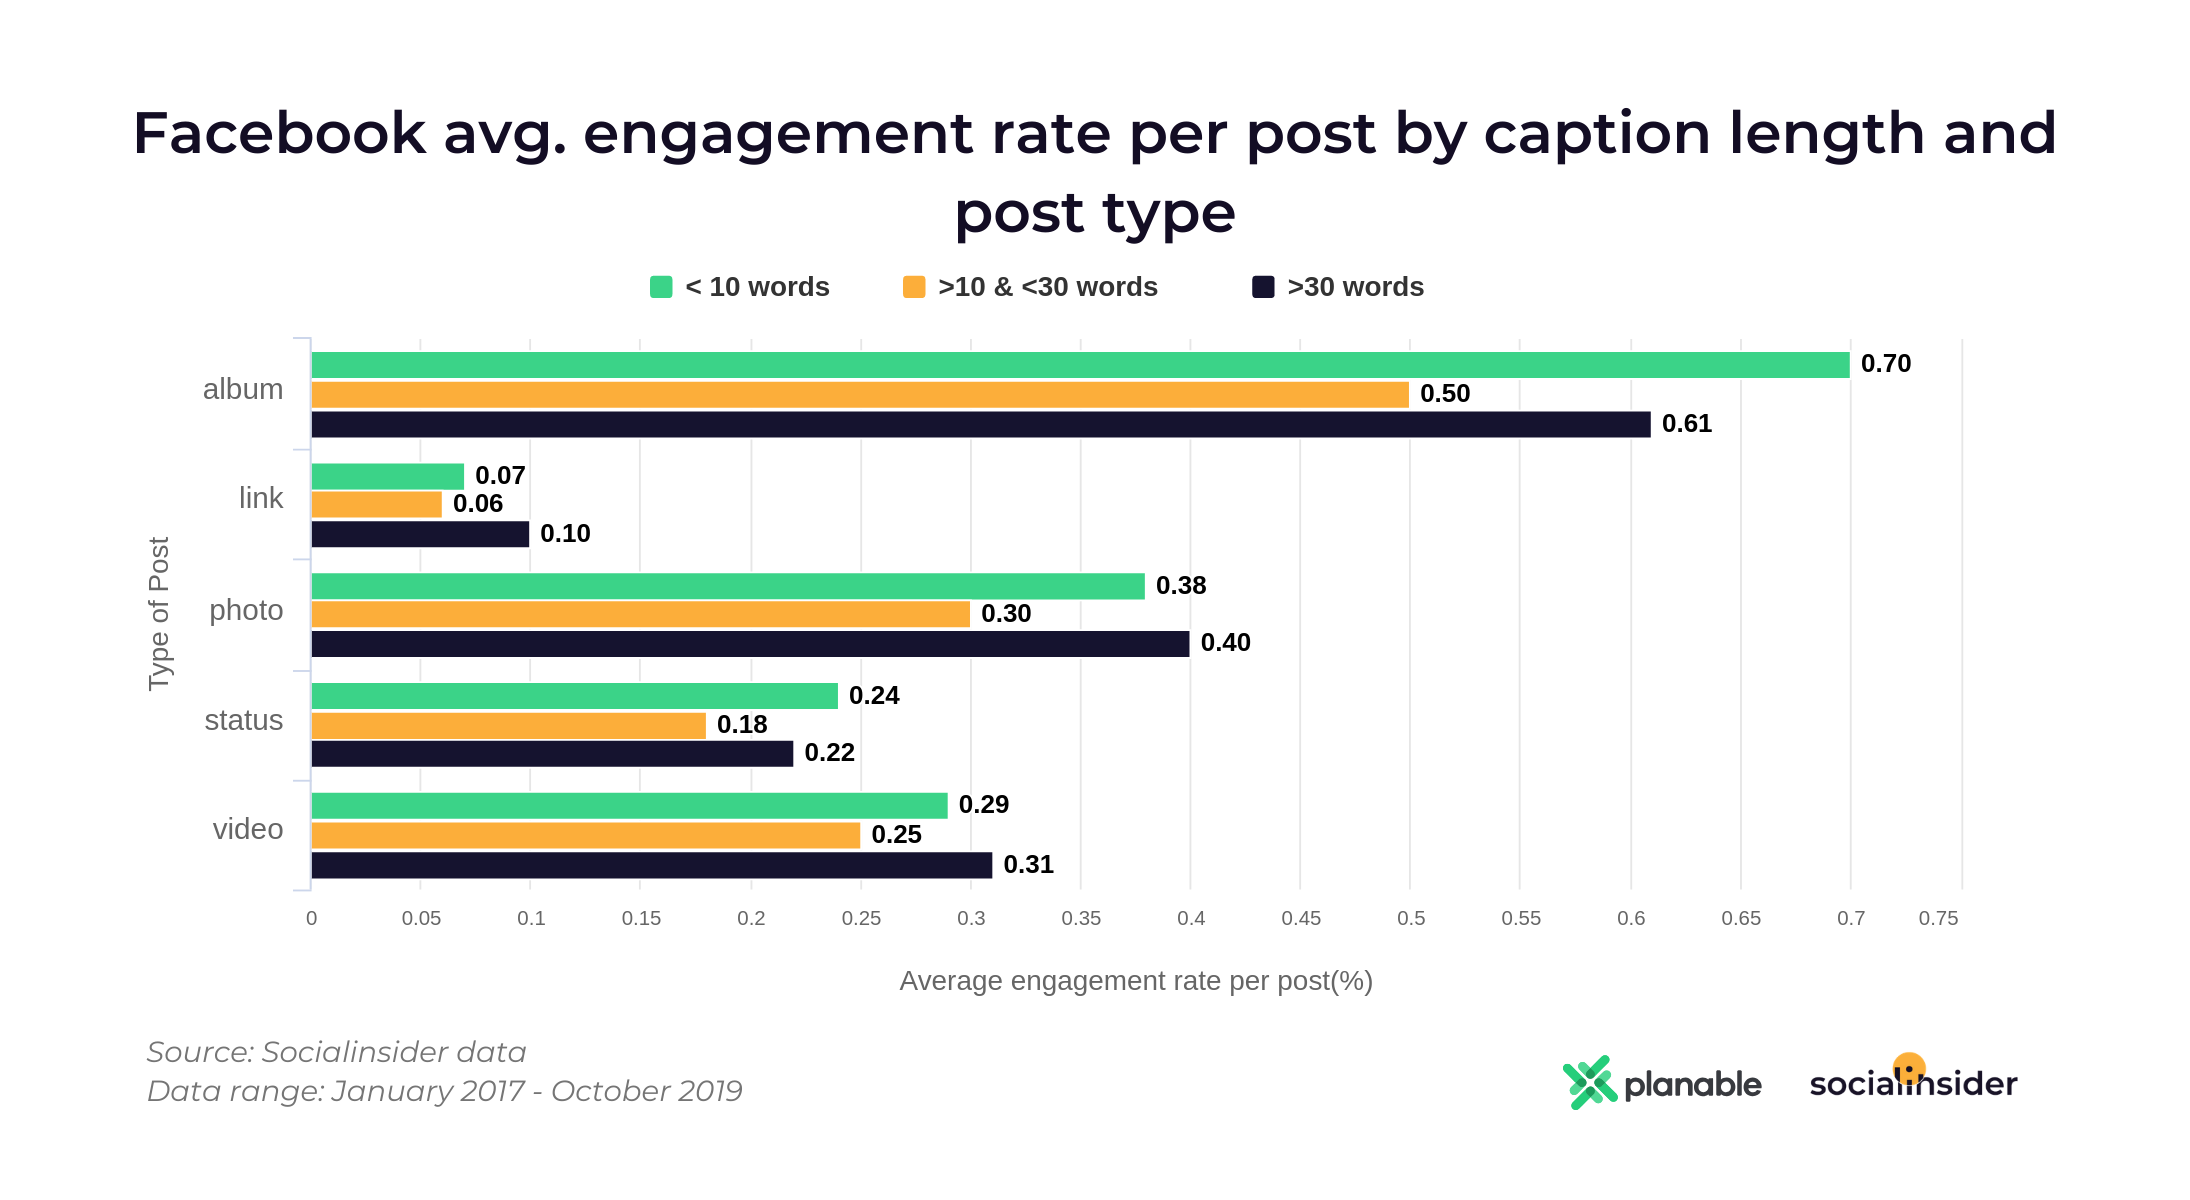 Facebook post engagement by length and type